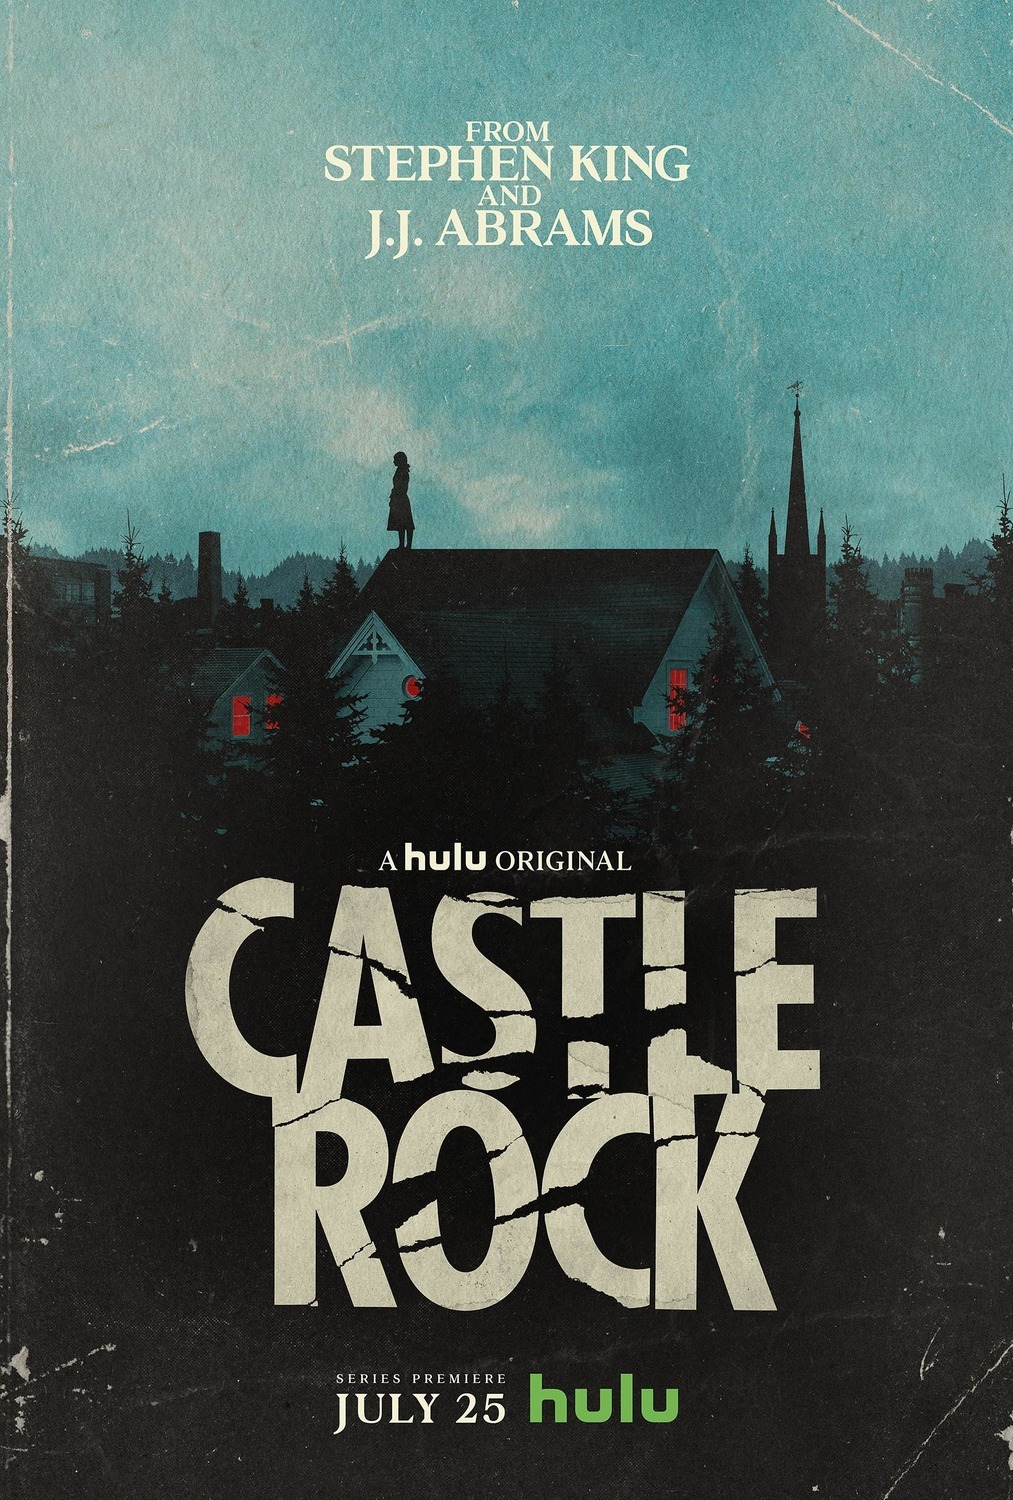 "Othersode #20: Daddy Skarsgård / Castle Rock / Interview with Gabrielle Moss - Enter the spoooooky world of Stephen King with The Squad as we discuss the Hulu show Castle Rock. Together, we'll tackle the tough questions, such as: What does it mean to be ""evil""? Does this show have too many balls in the air? Is Bill Skarsgård hot or just tall? Why did Ariana Grande and Pete Davidson break up? Plus, stick around for an interview with the amazing Gabrielle Moss, Bustle columnist and author of Paperback Crush. Do you have opinions about Castle Rock? Theories about what the ending meant? A love letter for your favorite paperback series from when you were a teen? E-mail us and let us know at thesquad@booksquadgoals.com! And don't forget to rate, review, and subscribe! Why? Because we love you."